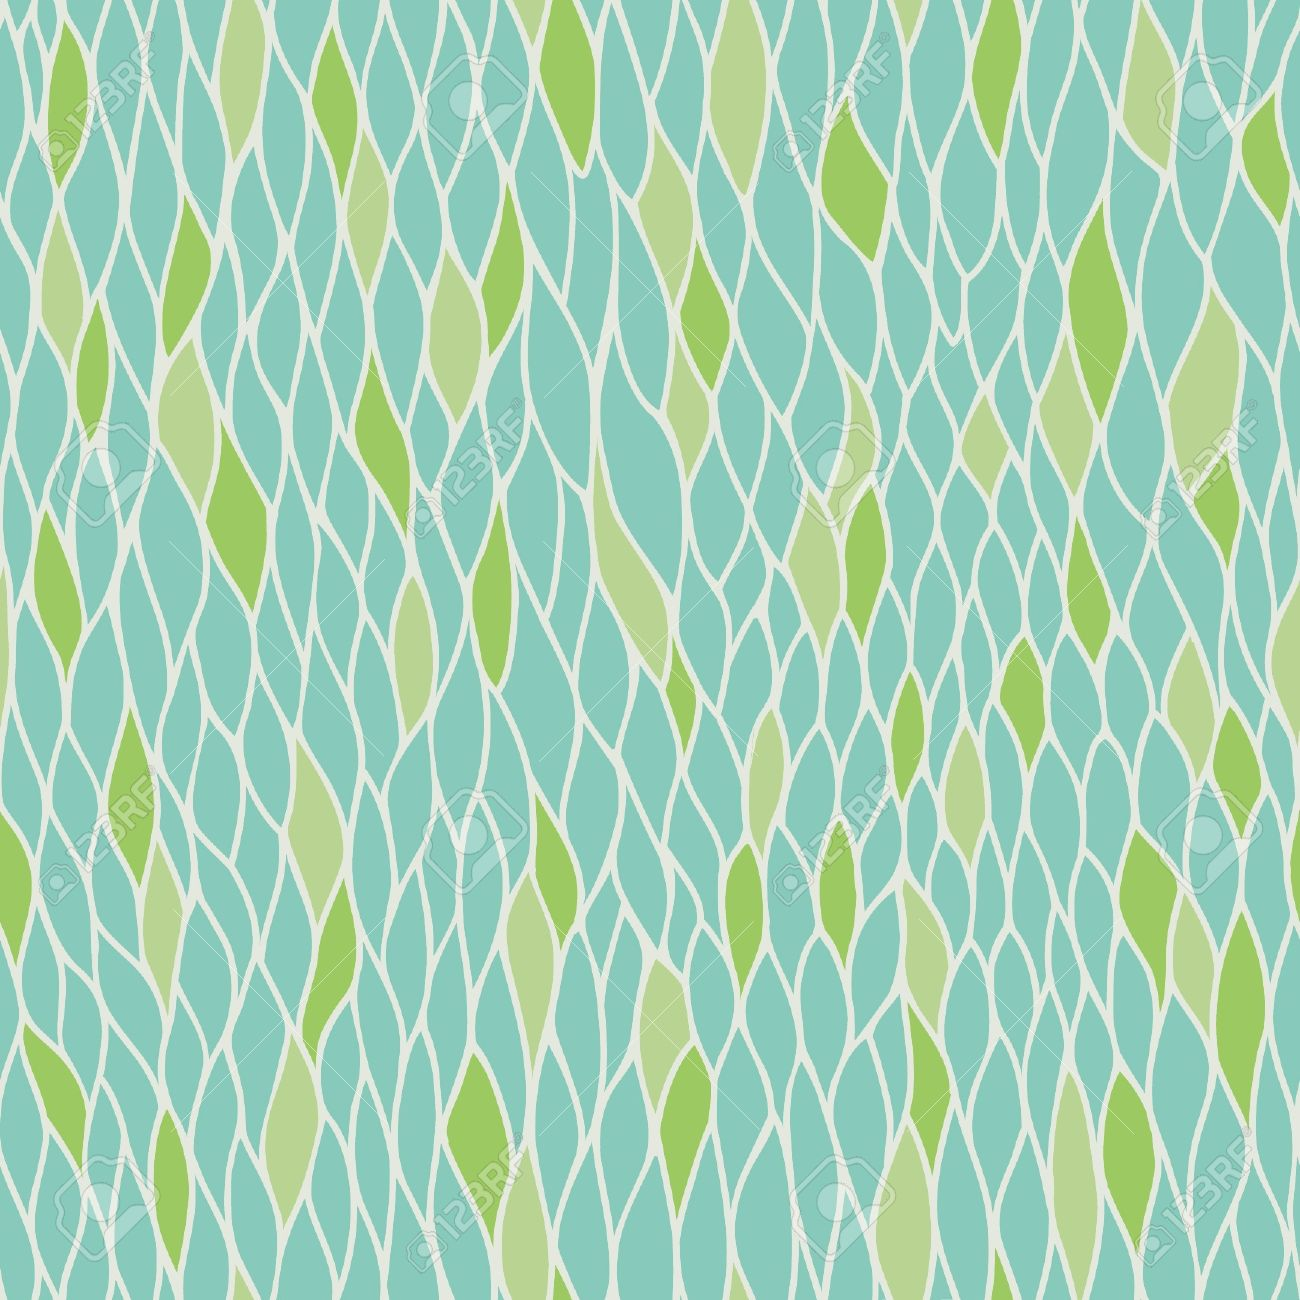 Abstract stylized seamless natural pattern with leaves  Endless linear texture  Template for design textile, backgroungs, wrapping paper Stock Vector - 17272509